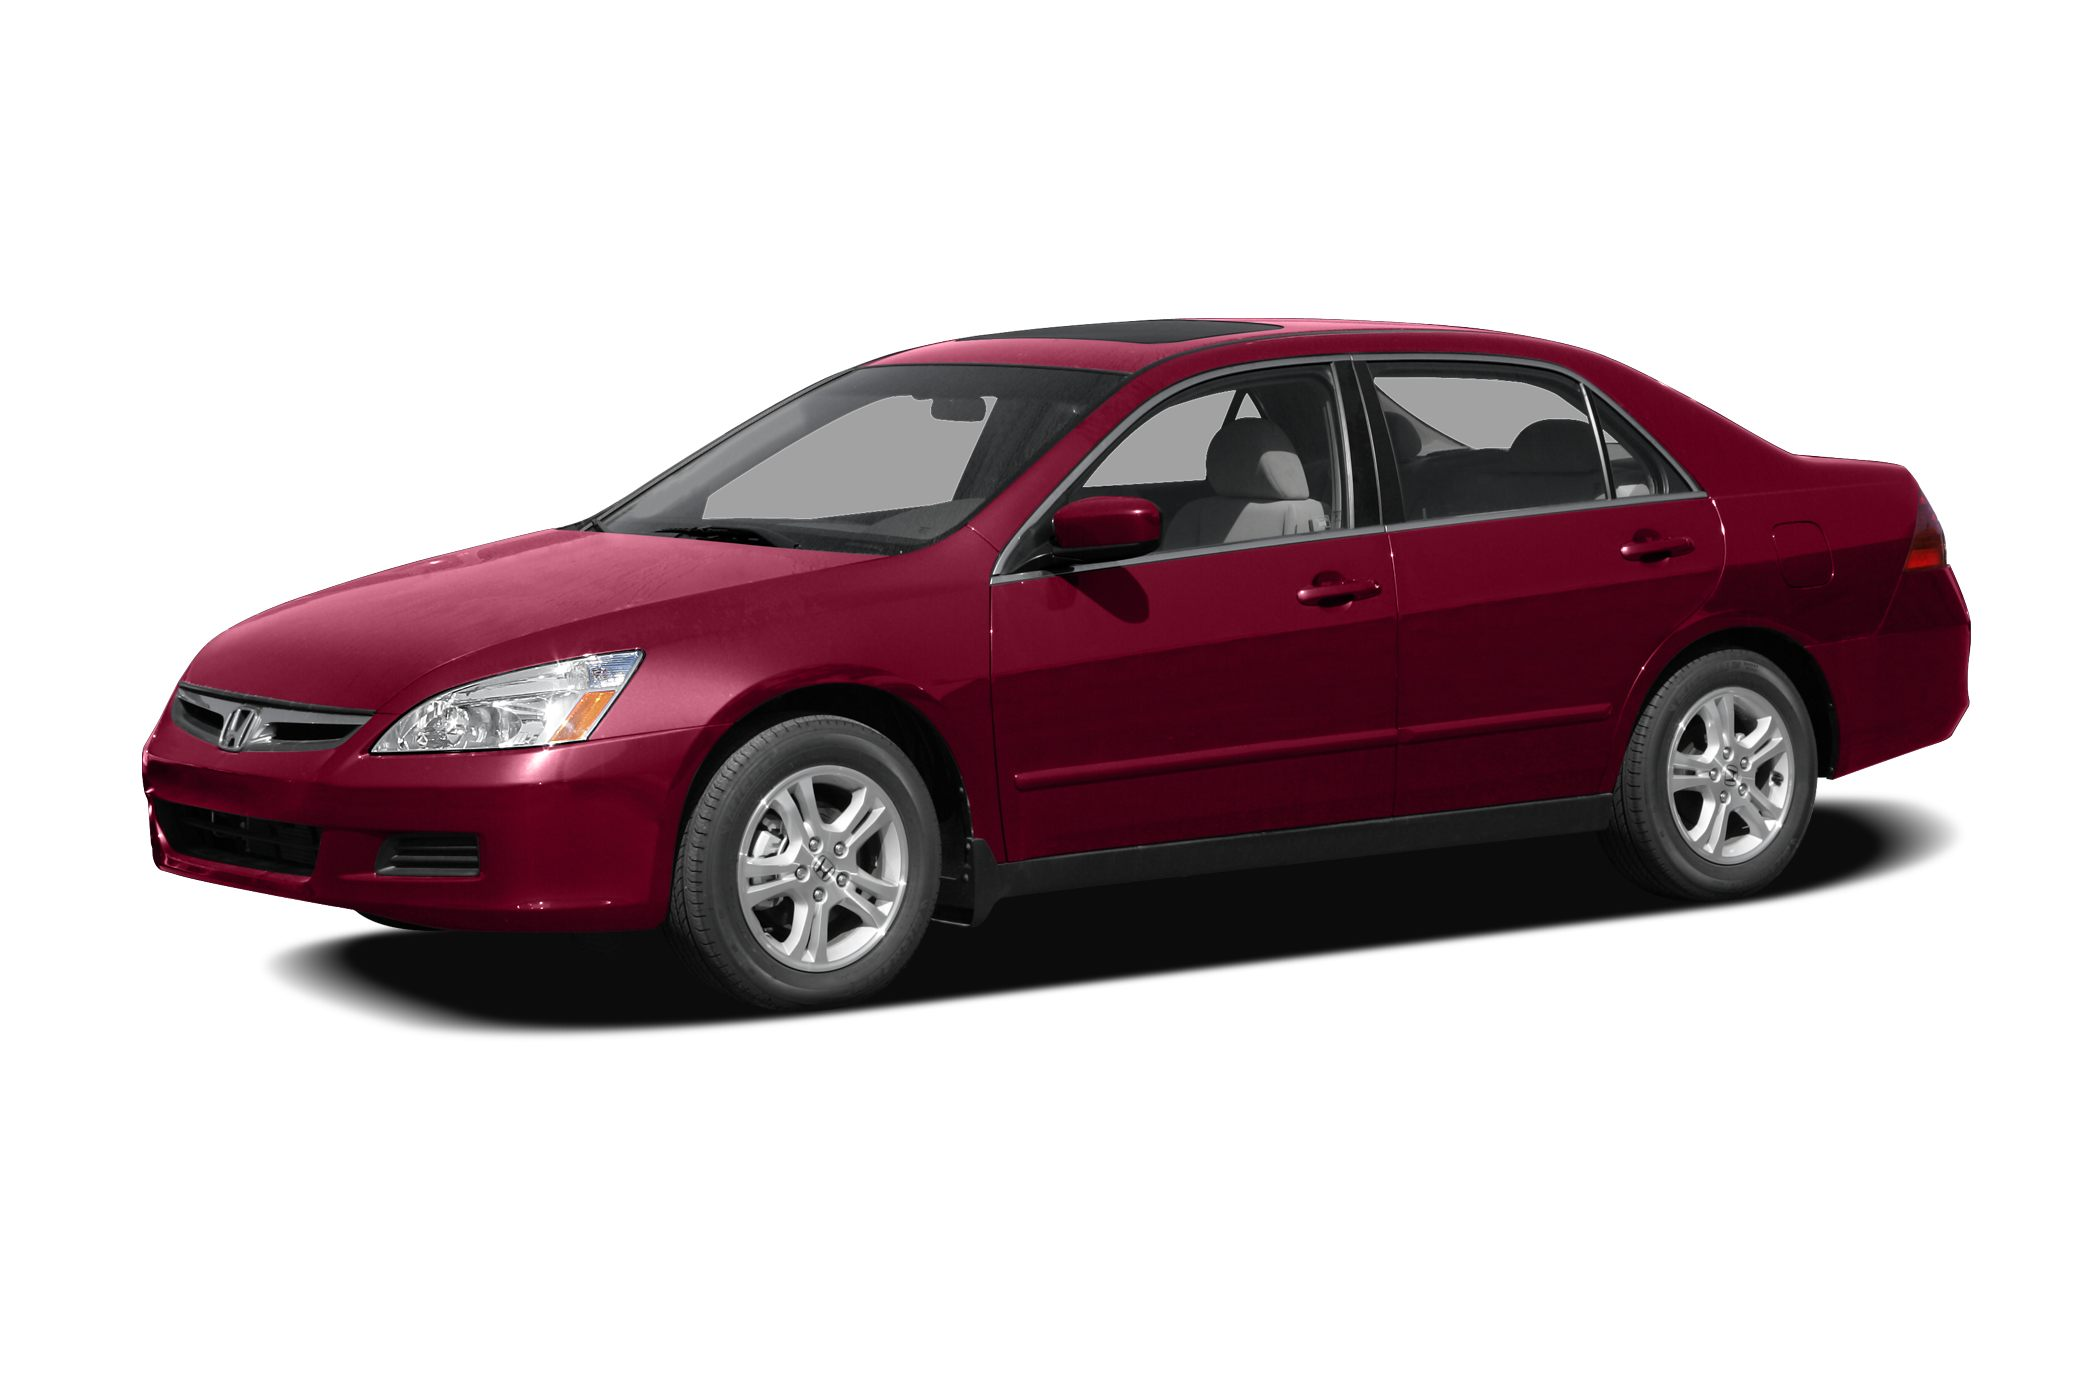 2007 Honda Accord SE Sedan for sale in Greenfield for $11,990 with 92,603 miles.